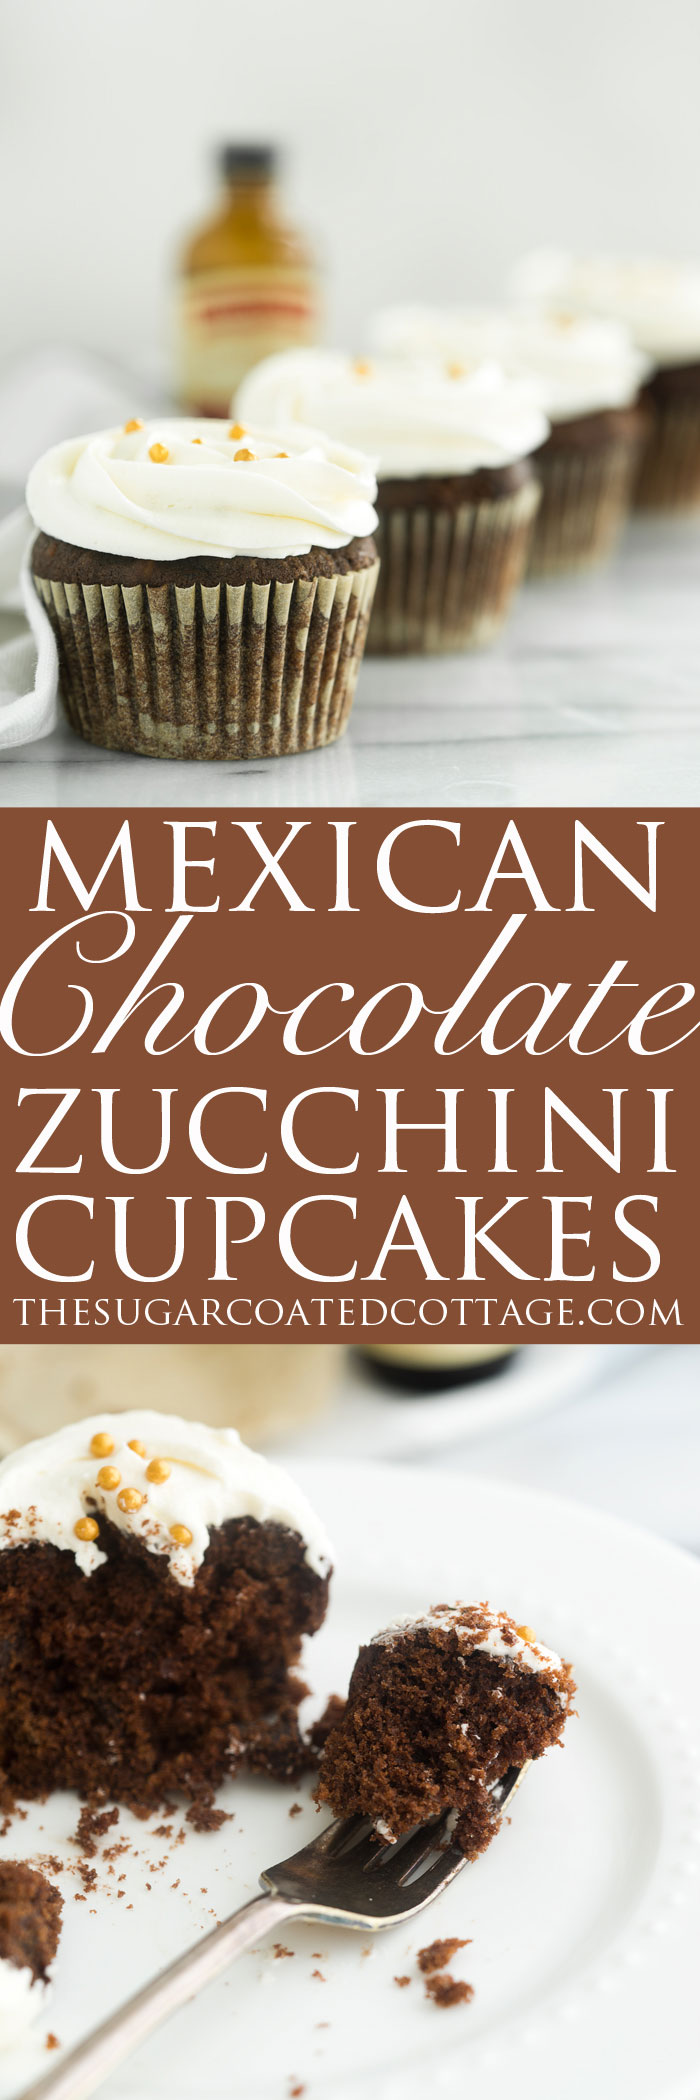 Deep rich moist chocolate zucchini cake base with strong hits of cinnamon and a pinch of nutmeg. | thesugarcoatedcottage.com #NielsenMasseyInspires